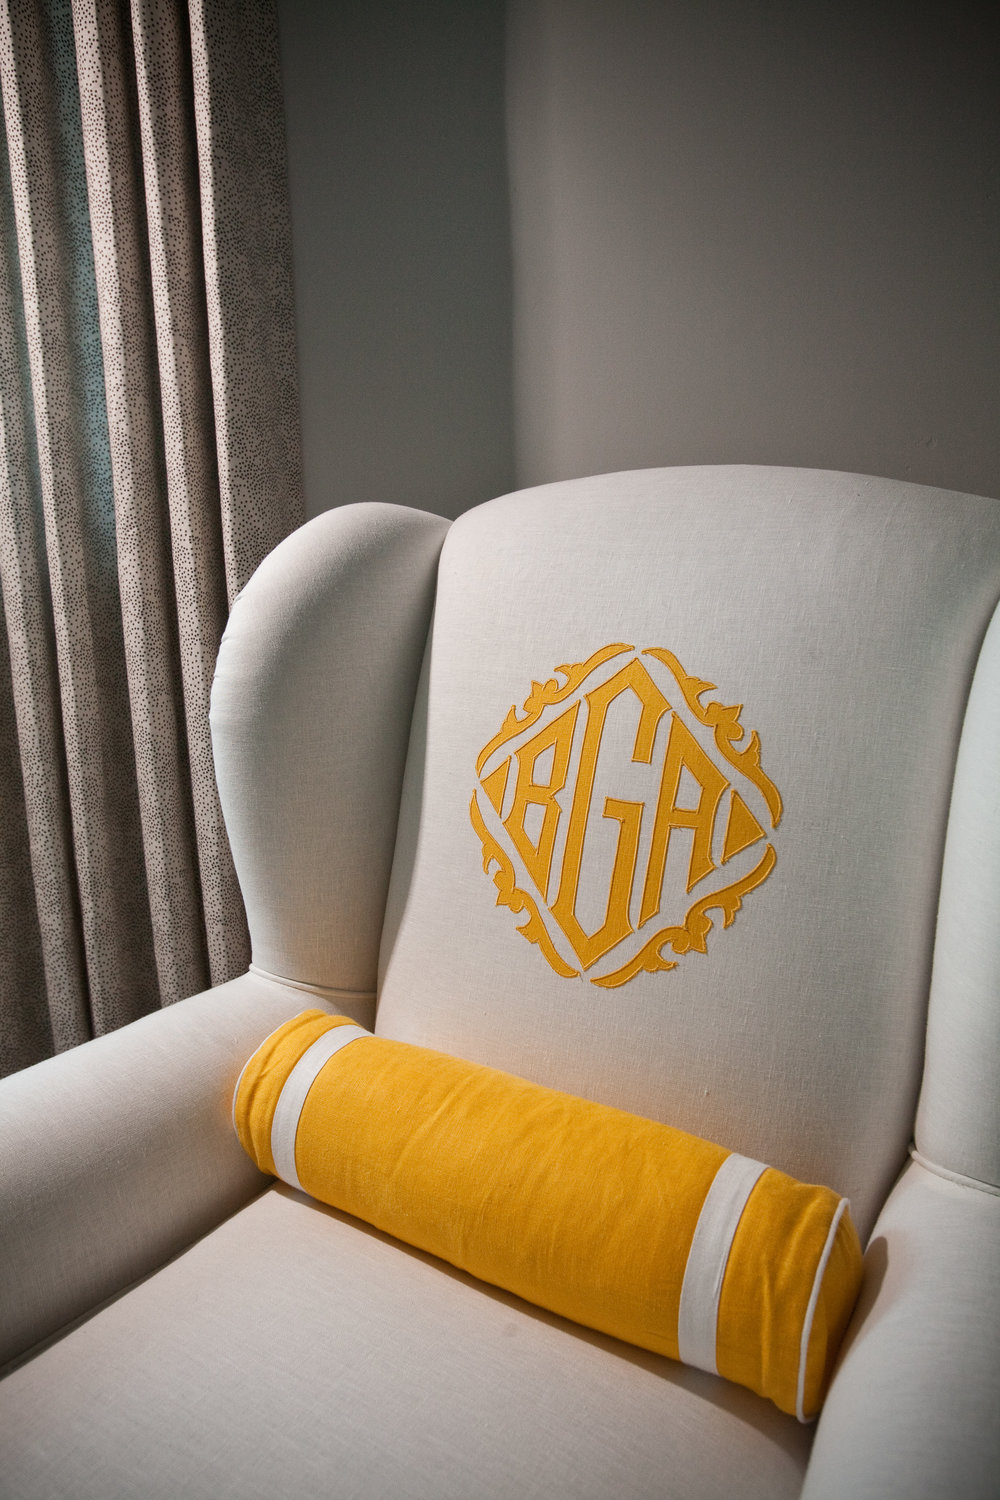 This cheerful bespoke monogram was created especially for this comfy guest room readingchair to unify with the custom Leontine Linens beddings.